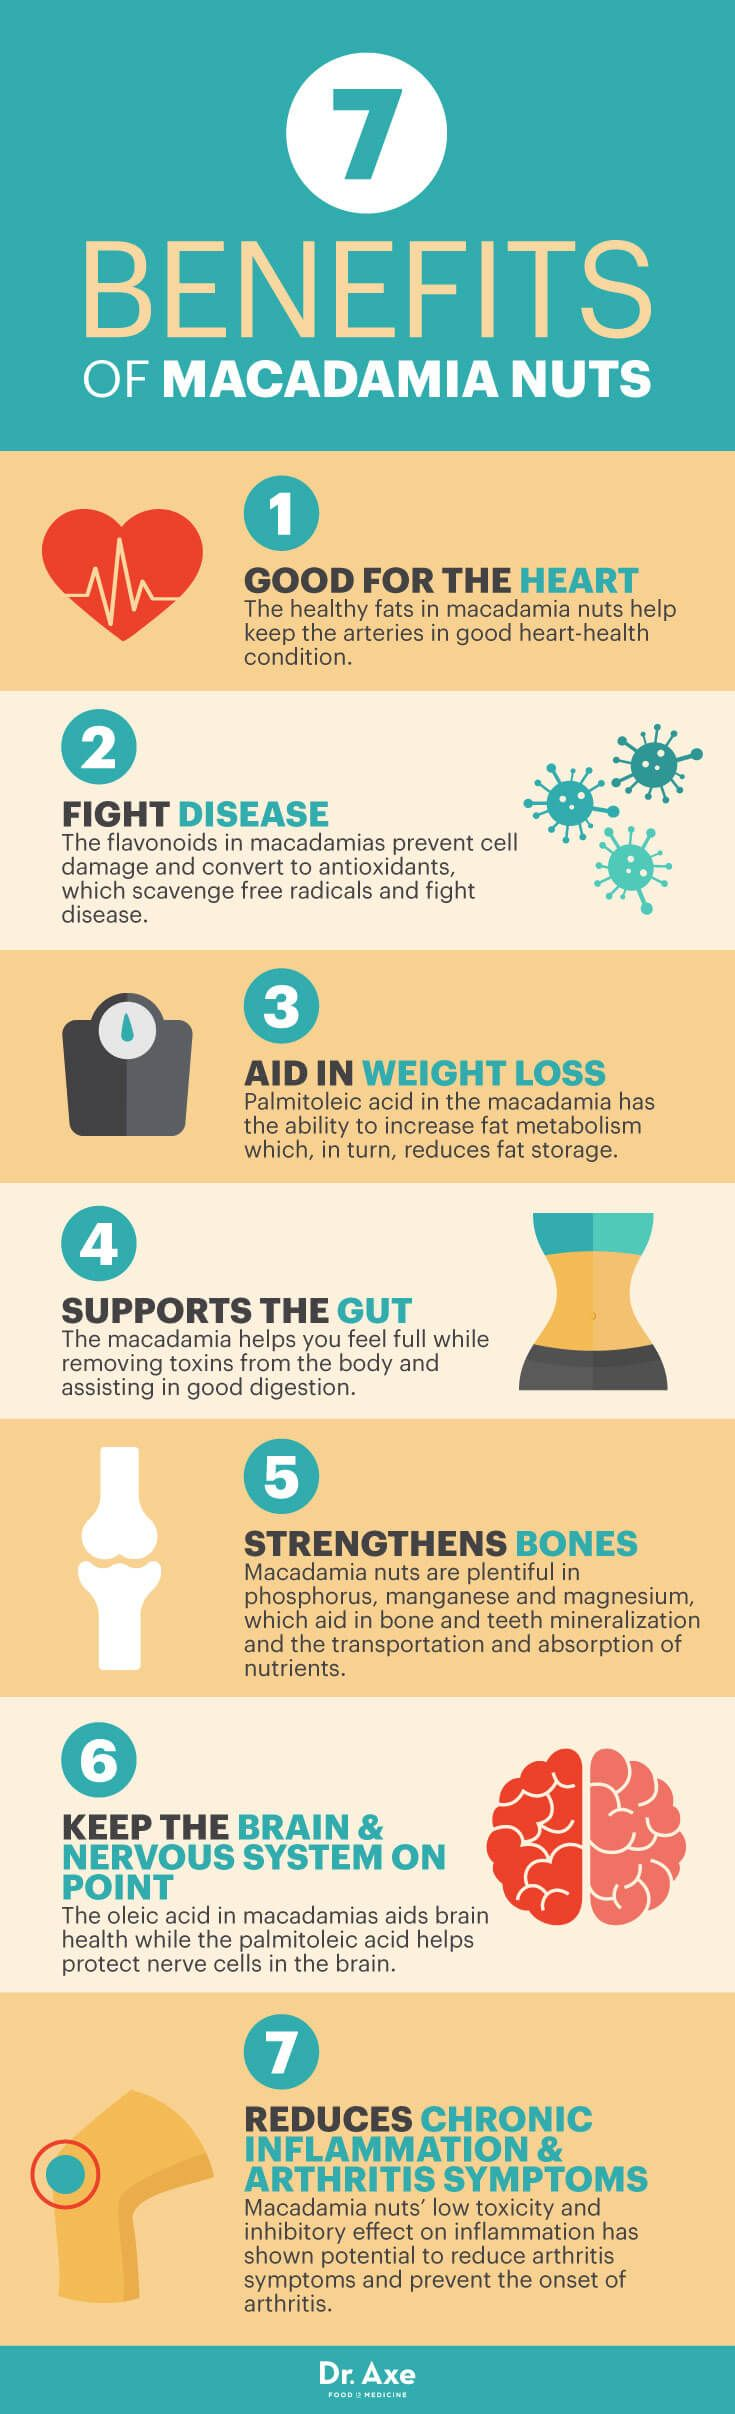 Benefits of macadamia nuts - Dr. Axe http://www.draxe.com #health #holistic #natural